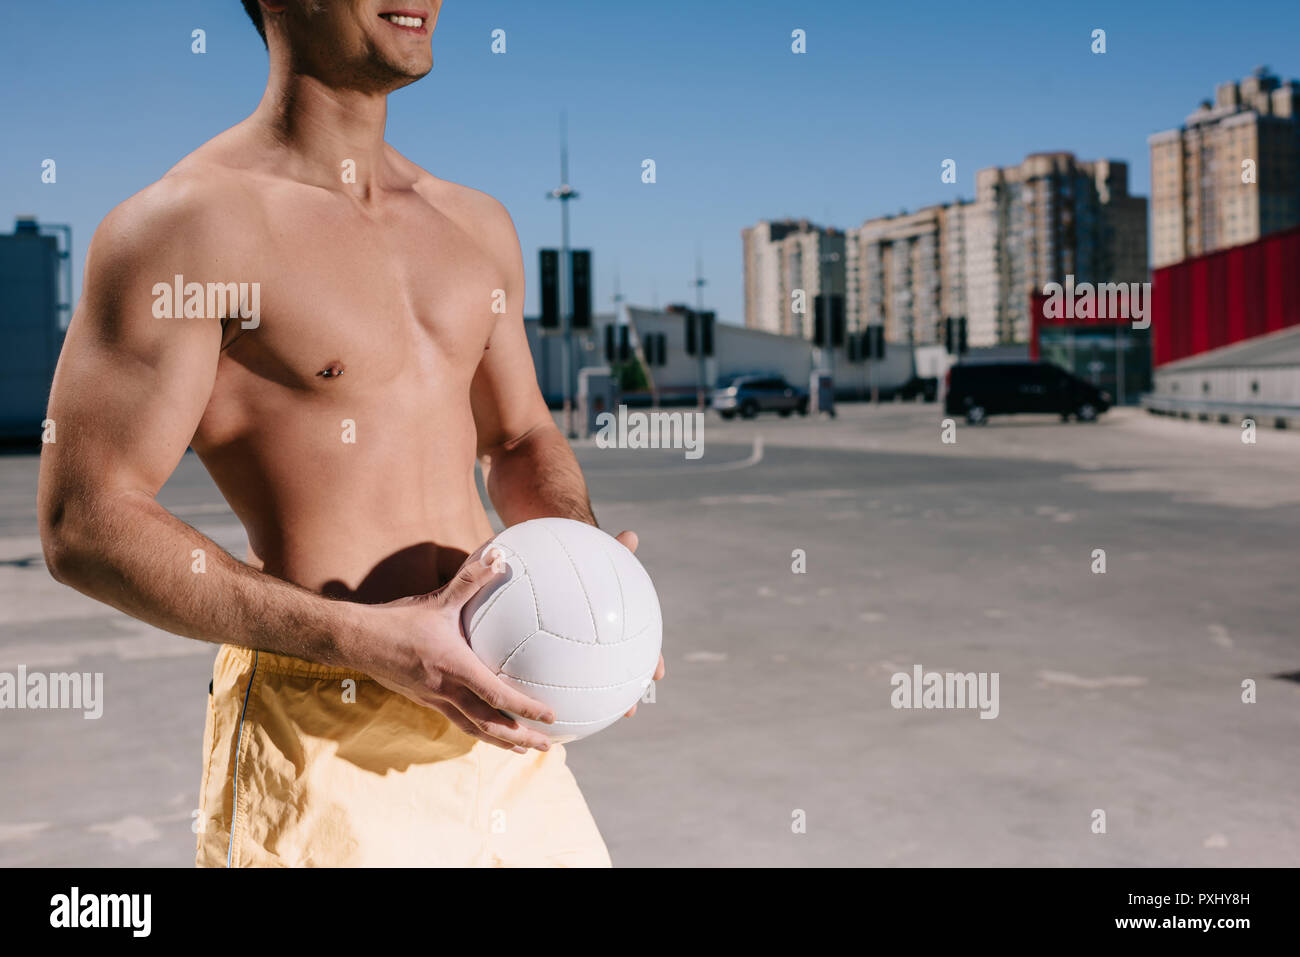 cropped shot of young shirtless man holding volleyball ball on parking - Stock Image